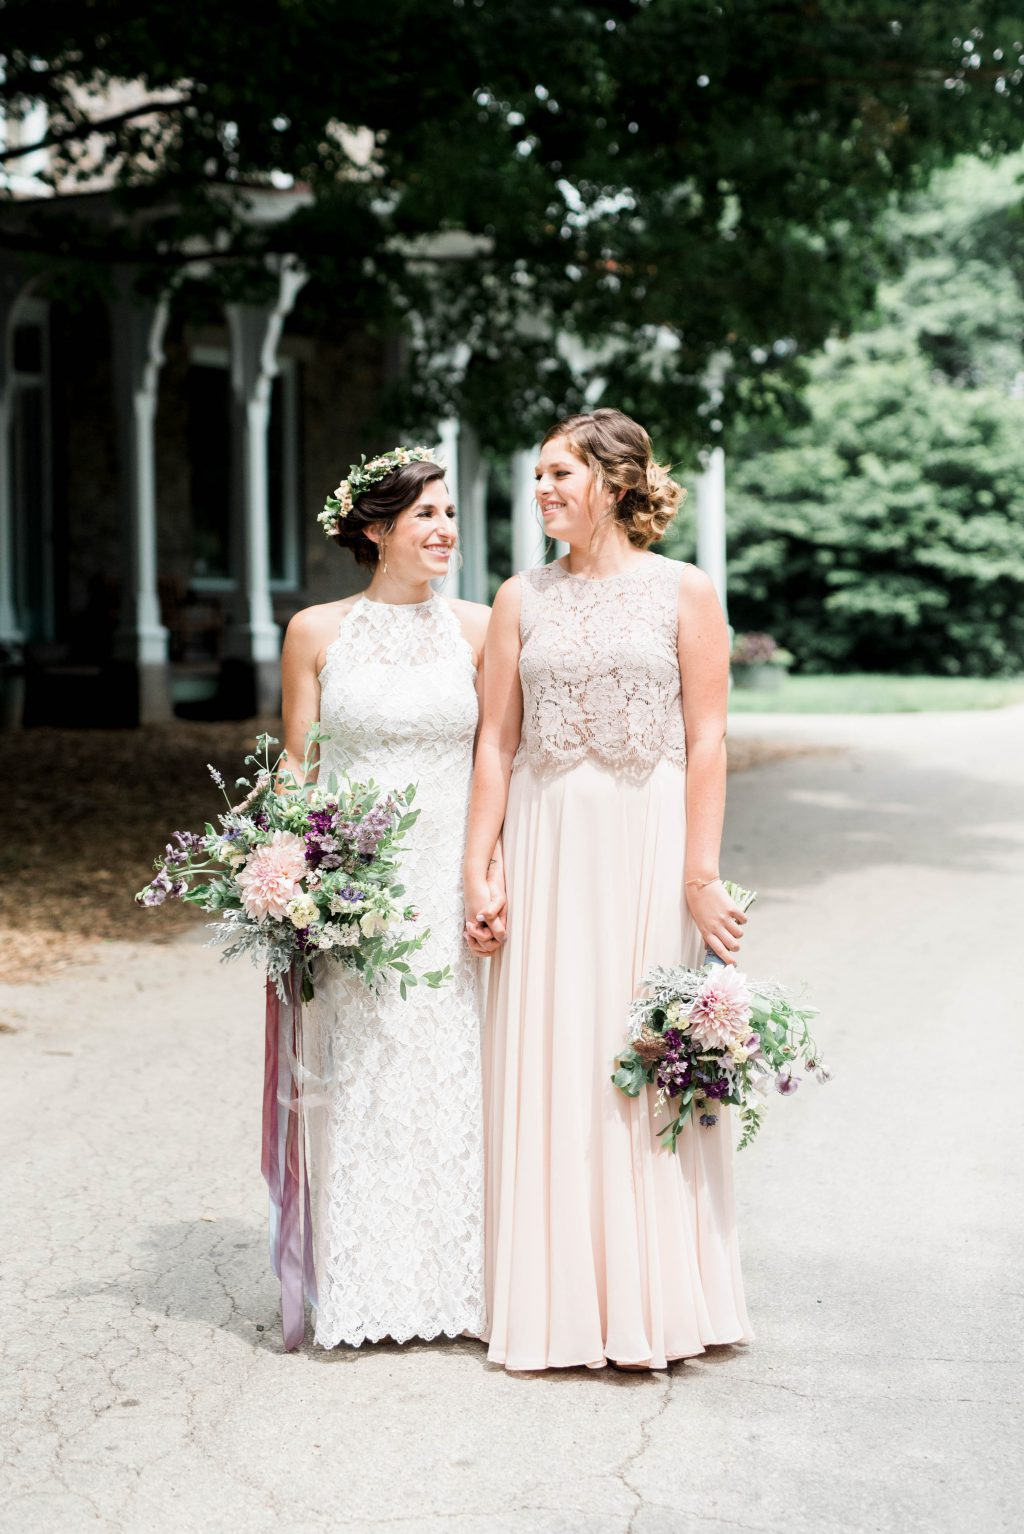 awbury-arboretum-wedding-DIY-boho-summer-haley-richter-photography-119